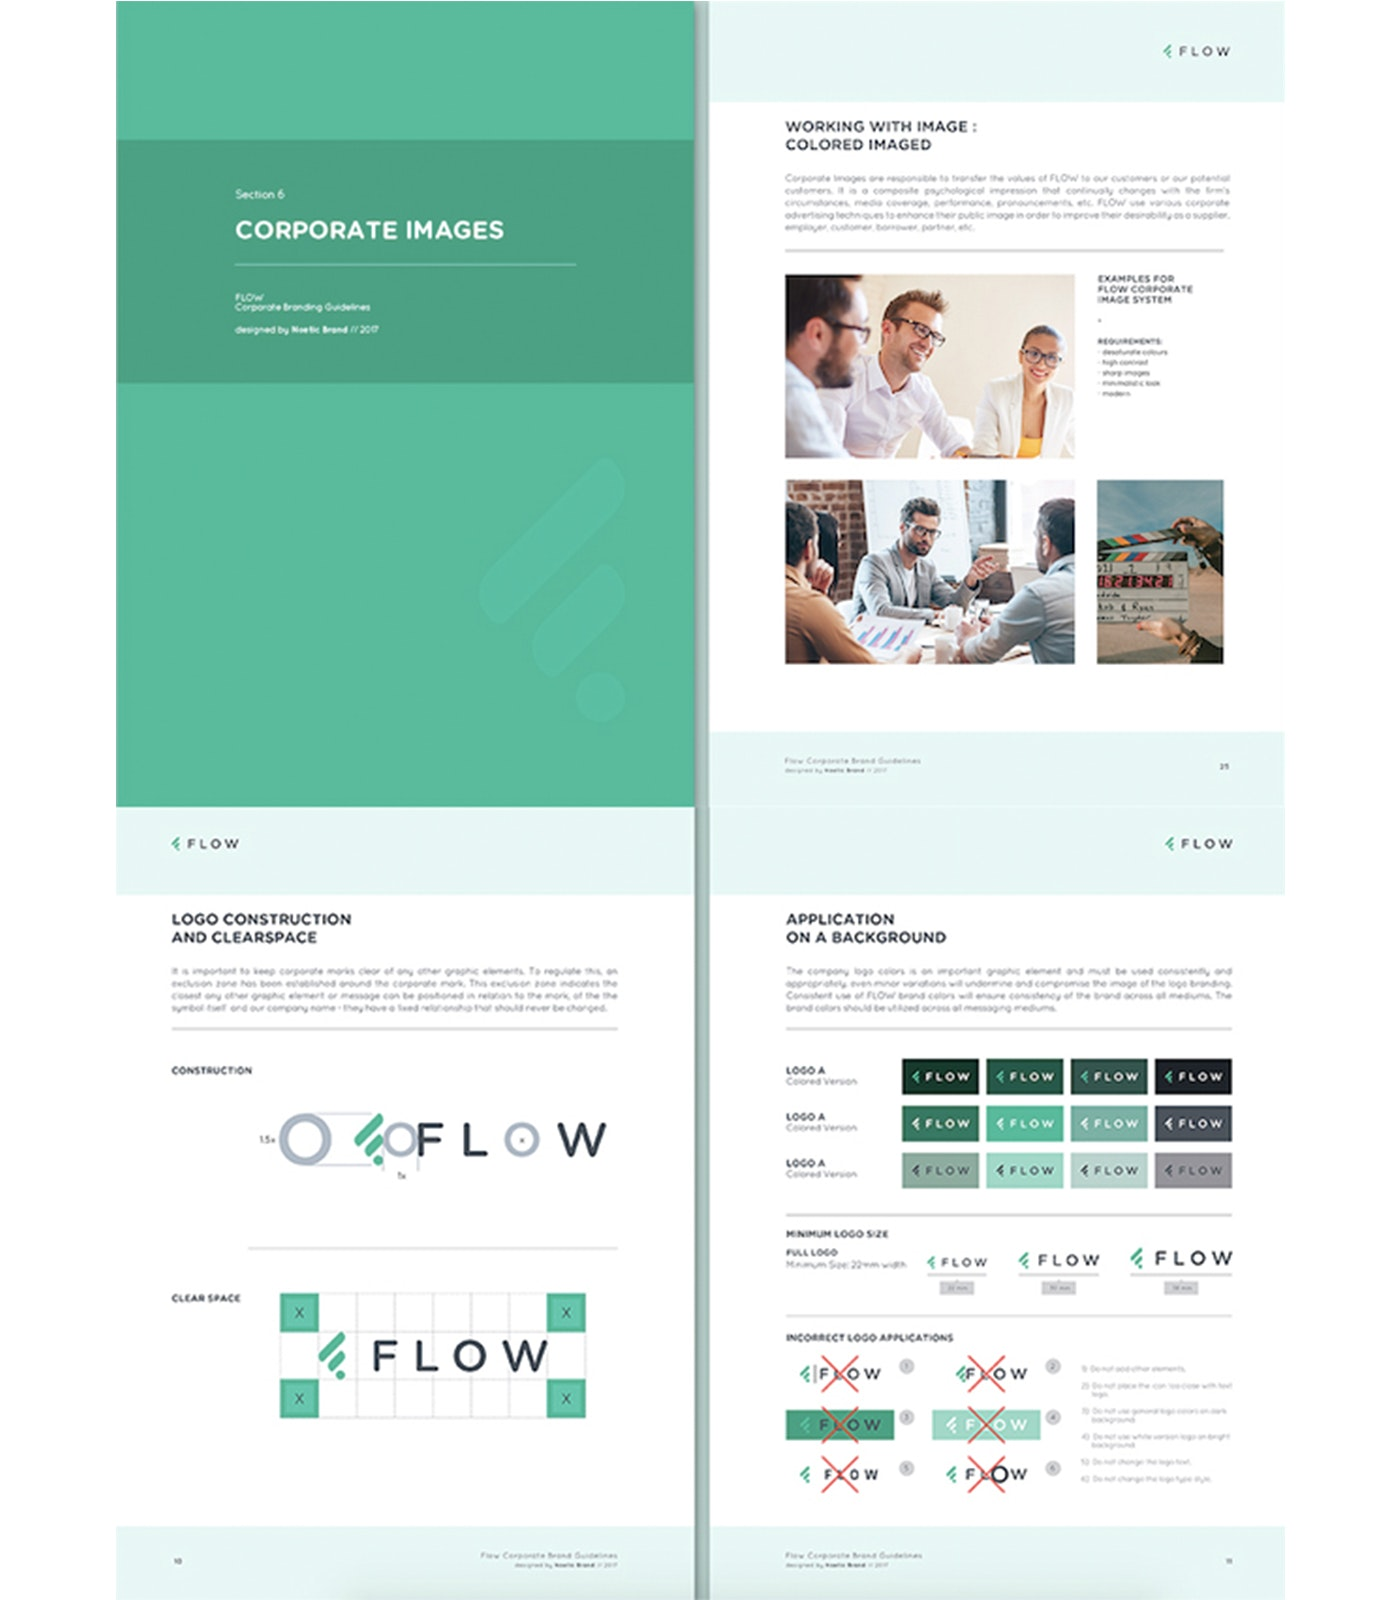 FLOW brand style guide